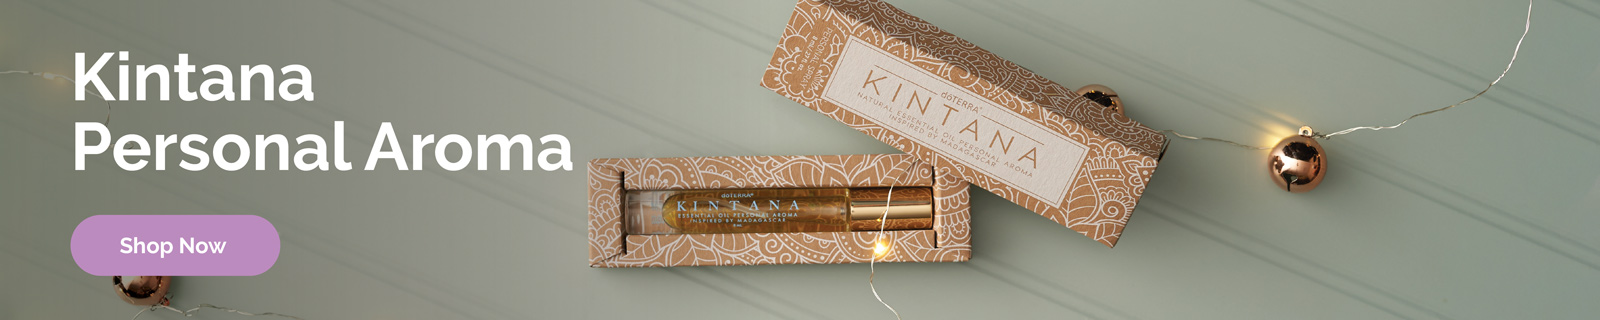 Check out the Kintana Personal Aroma here.